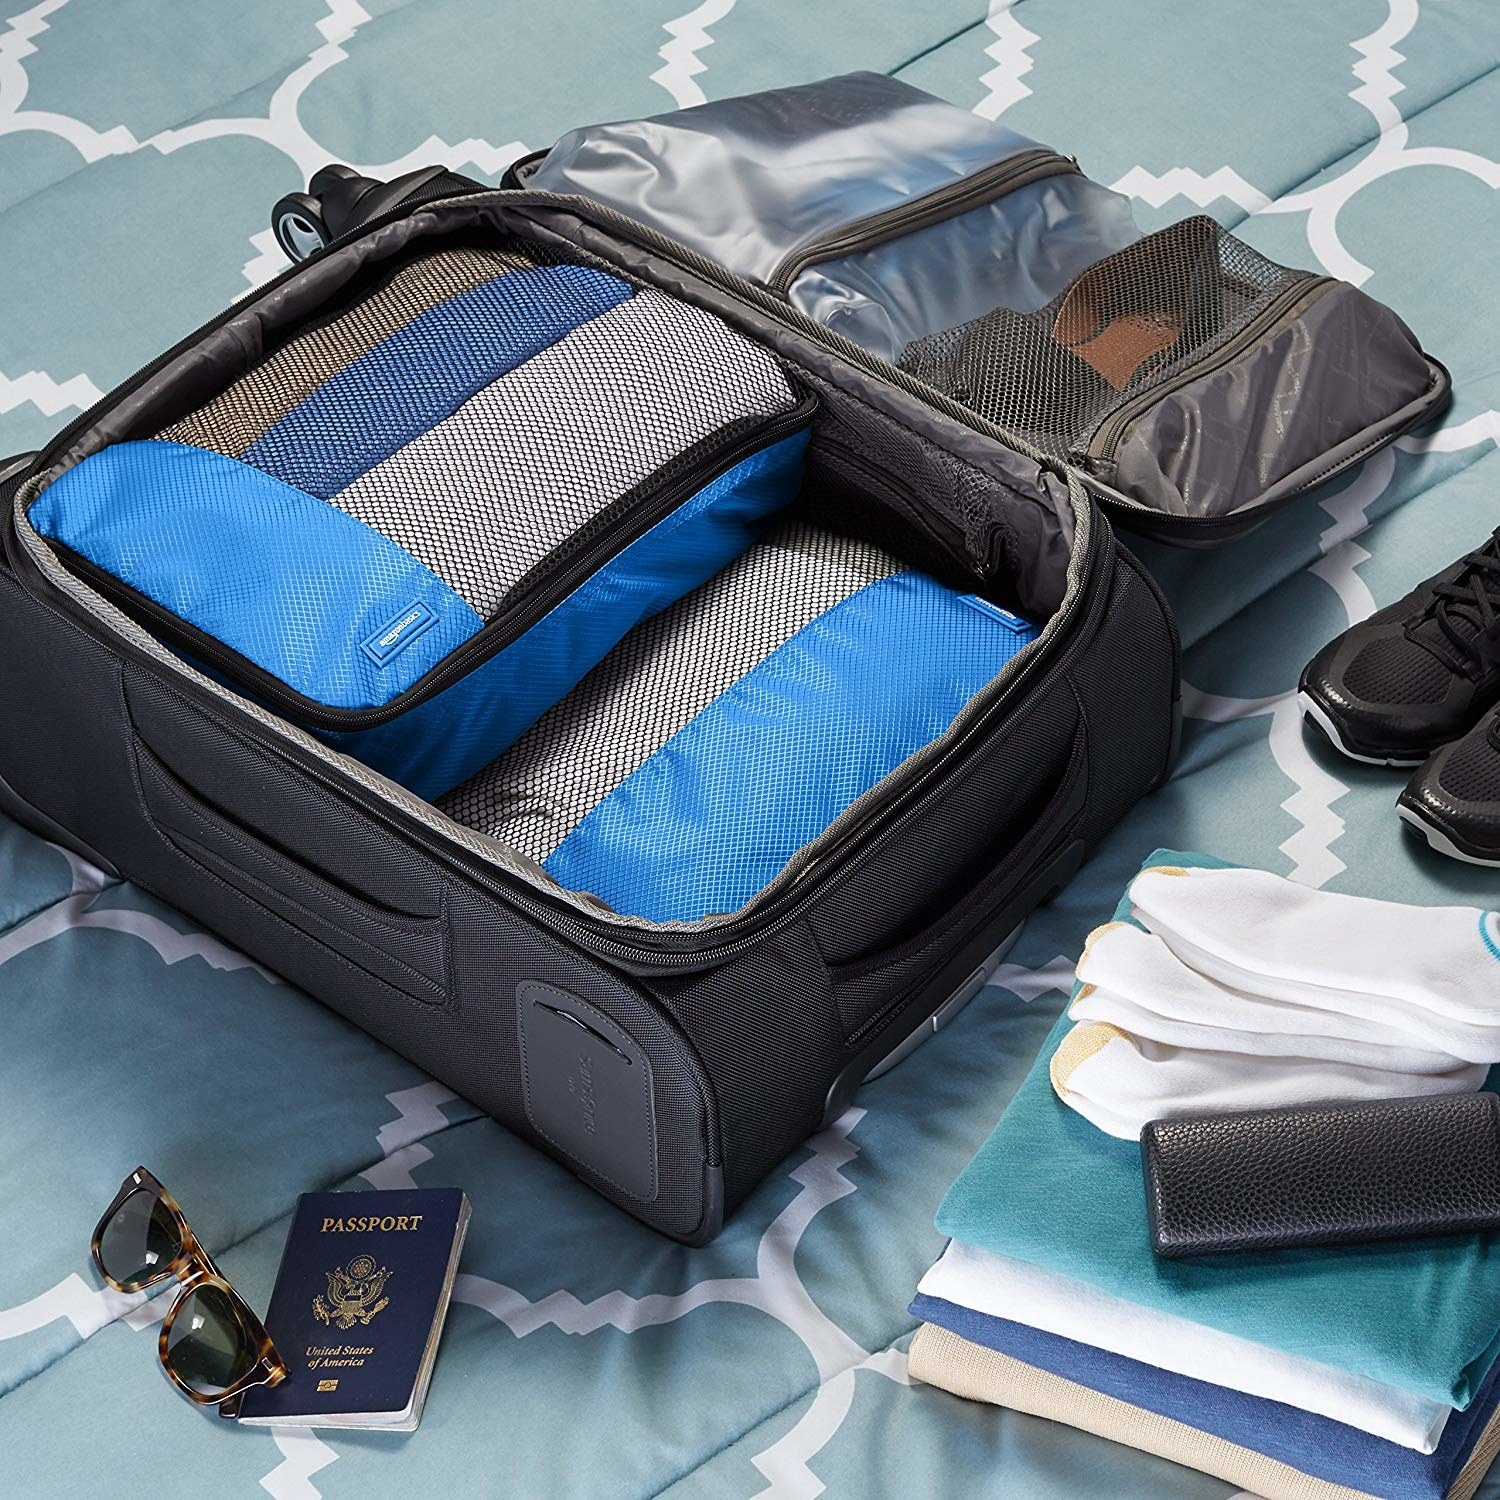 packing cubes inside of a suitcase